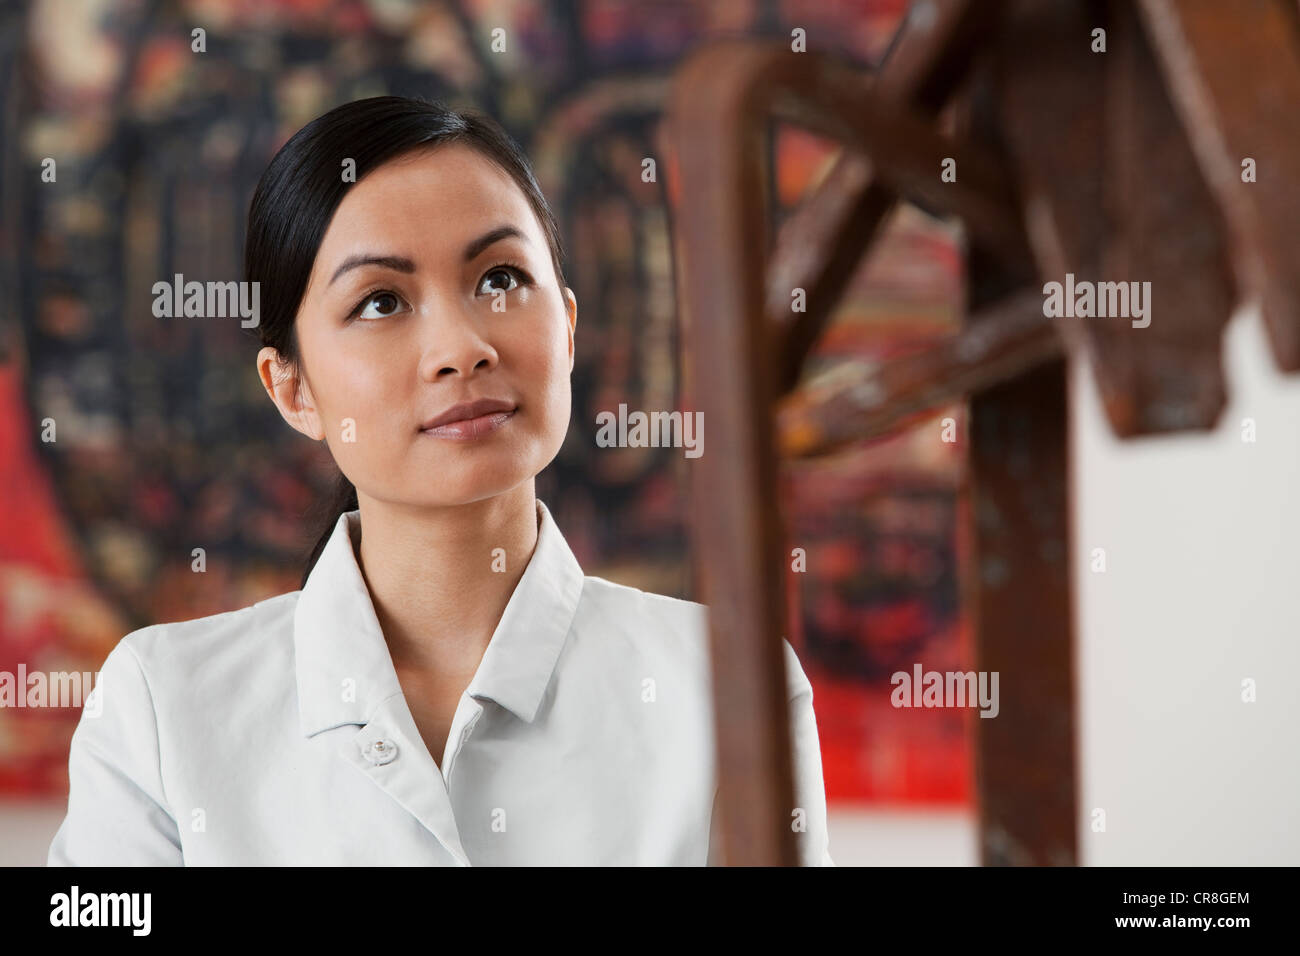 Young woman looking at sculpture in art gallery - Stock Image